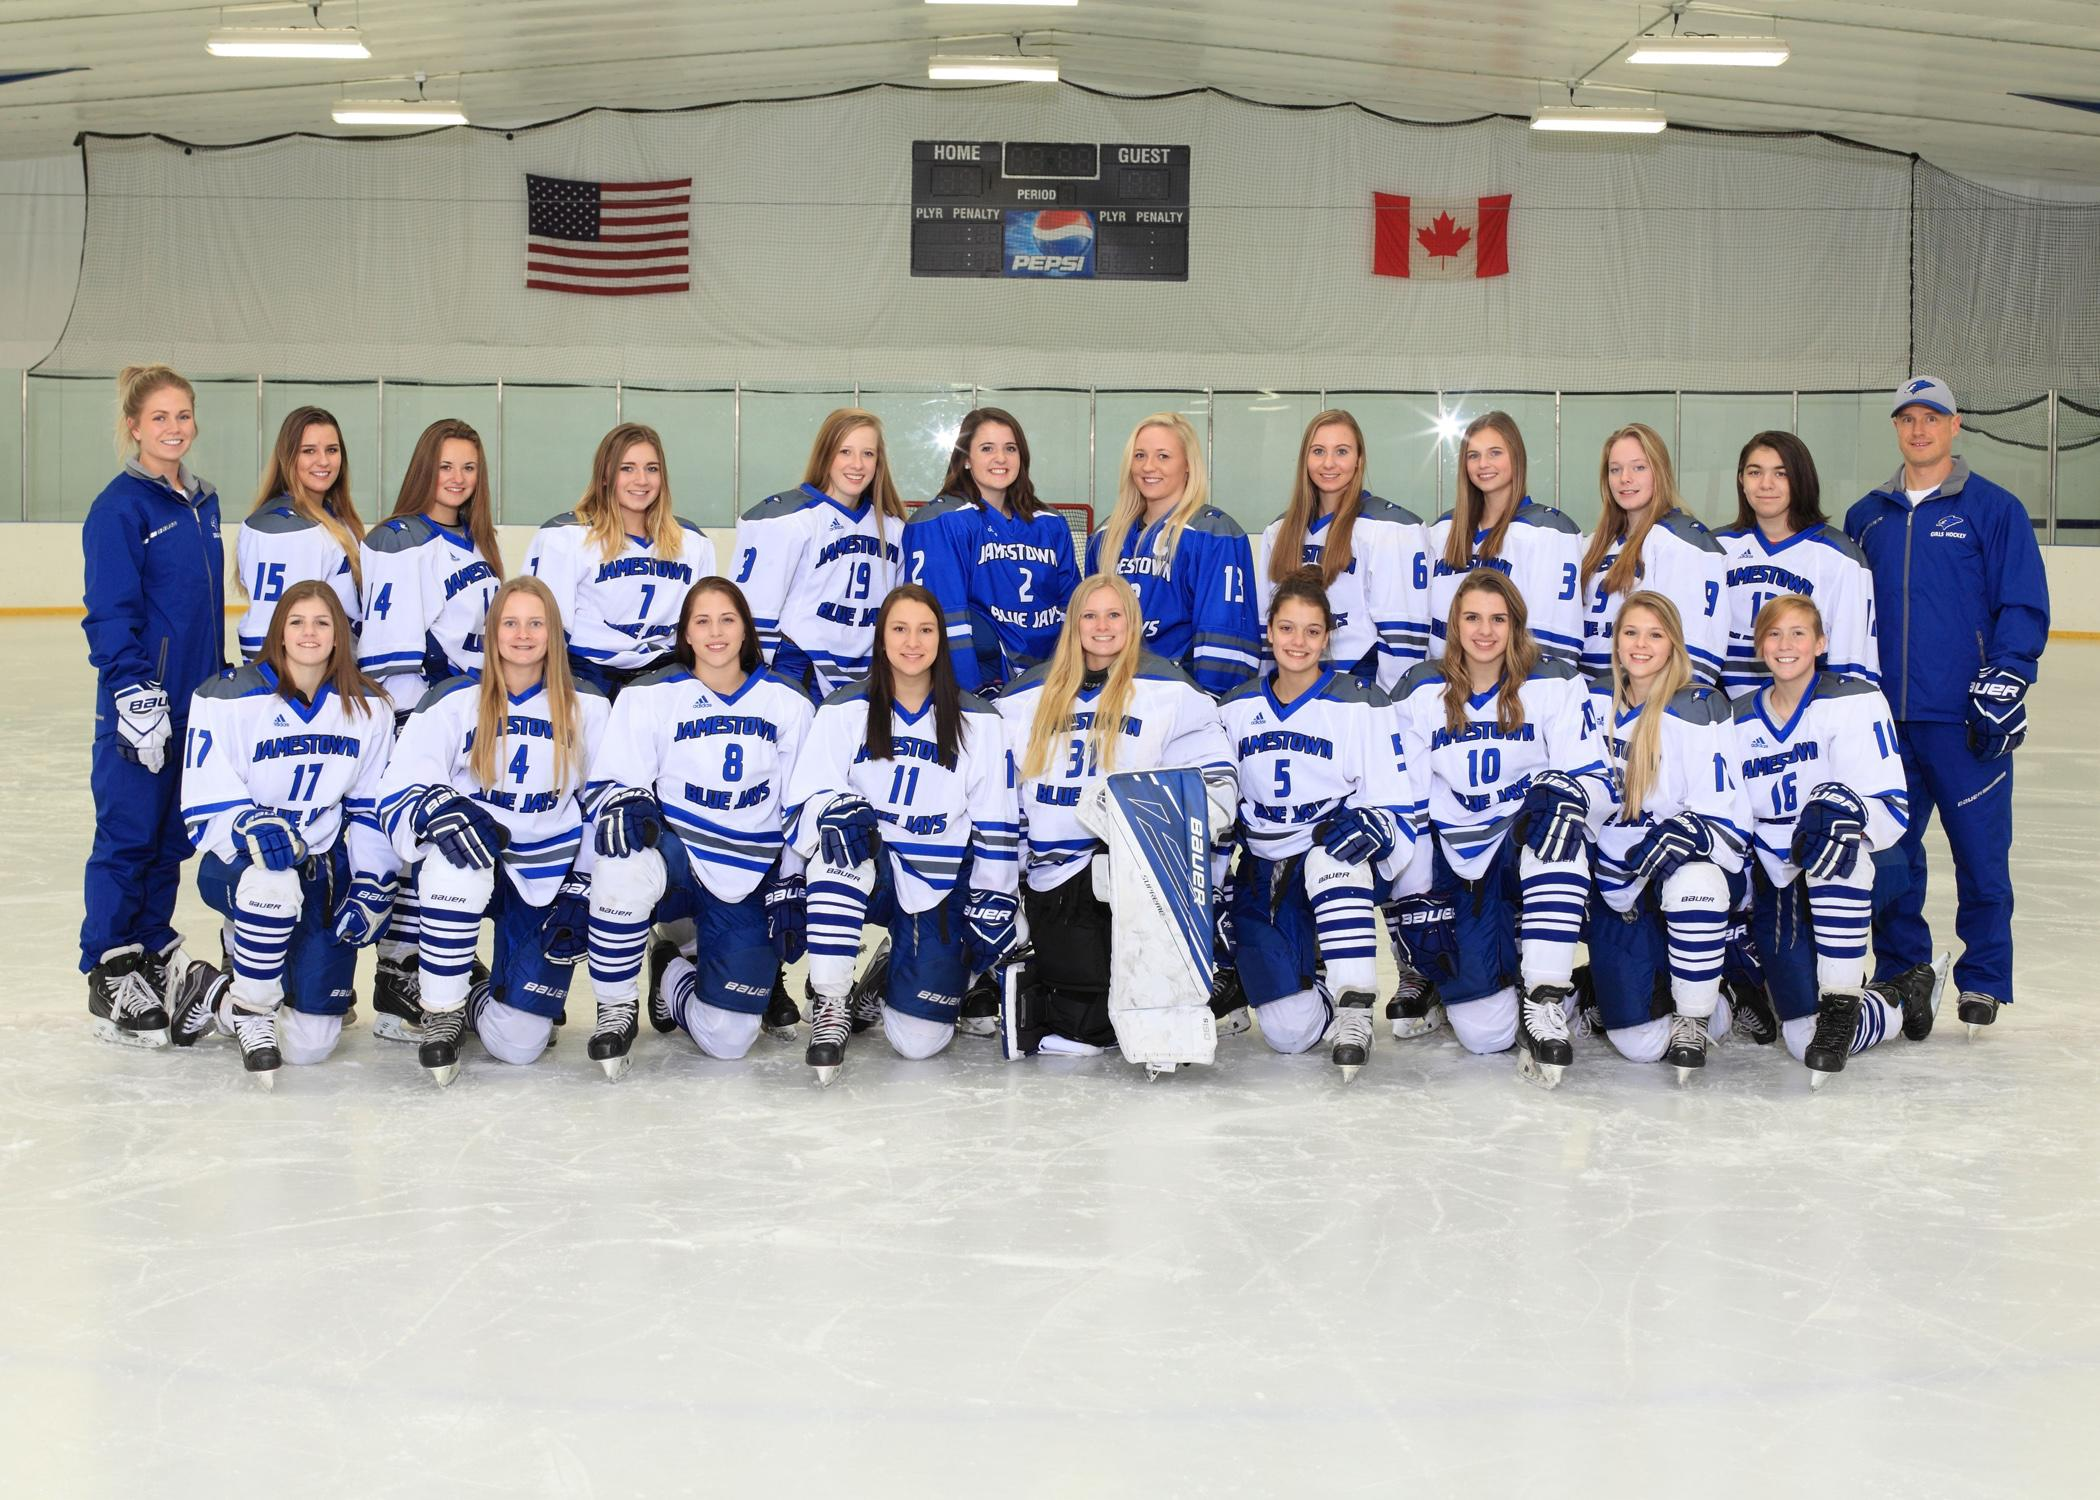 JHS Girls Hockey Team 2017